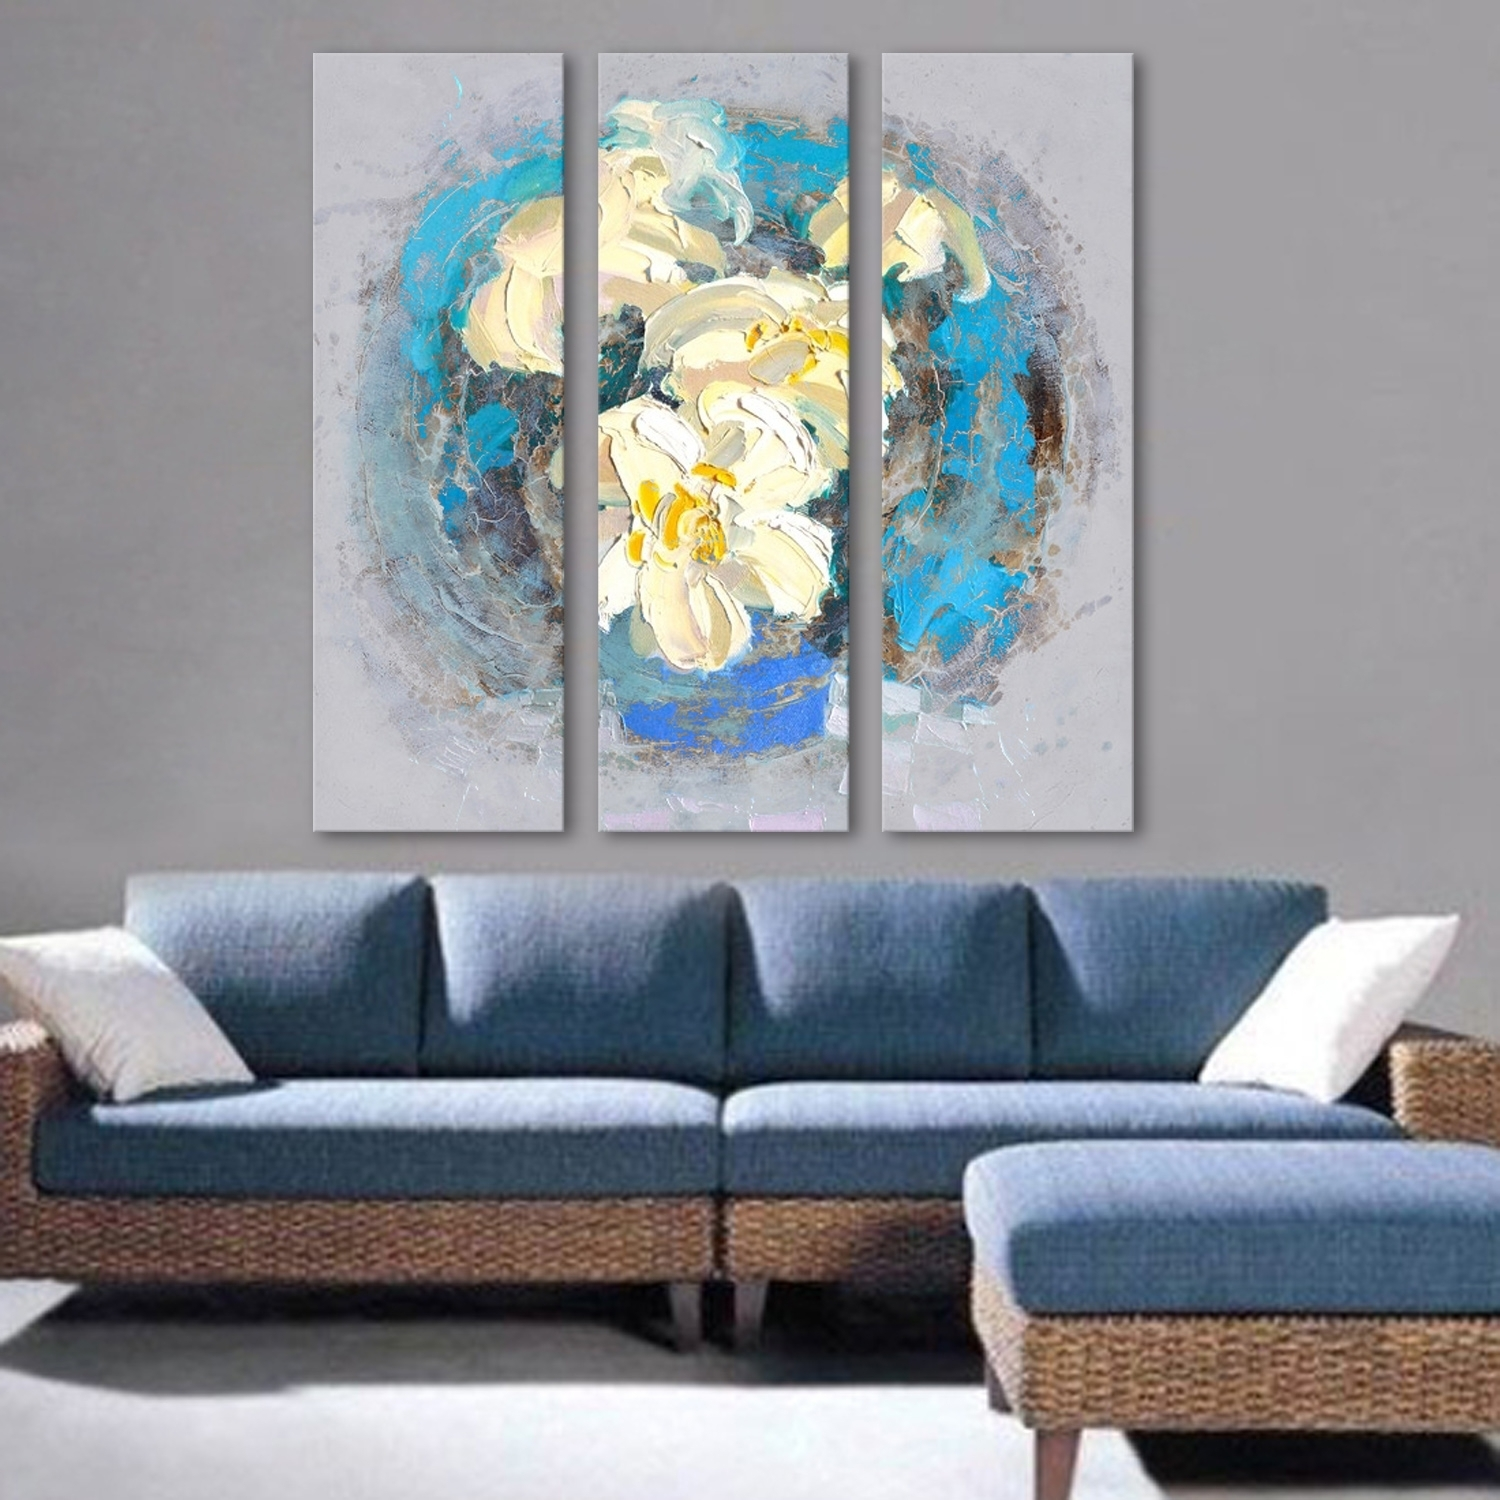 Oil Painting, Oil Paintings For Sale Online, Canvas Art Supplier For Most Up To Date Abstract Flower Wall Art (View 18 of 20)